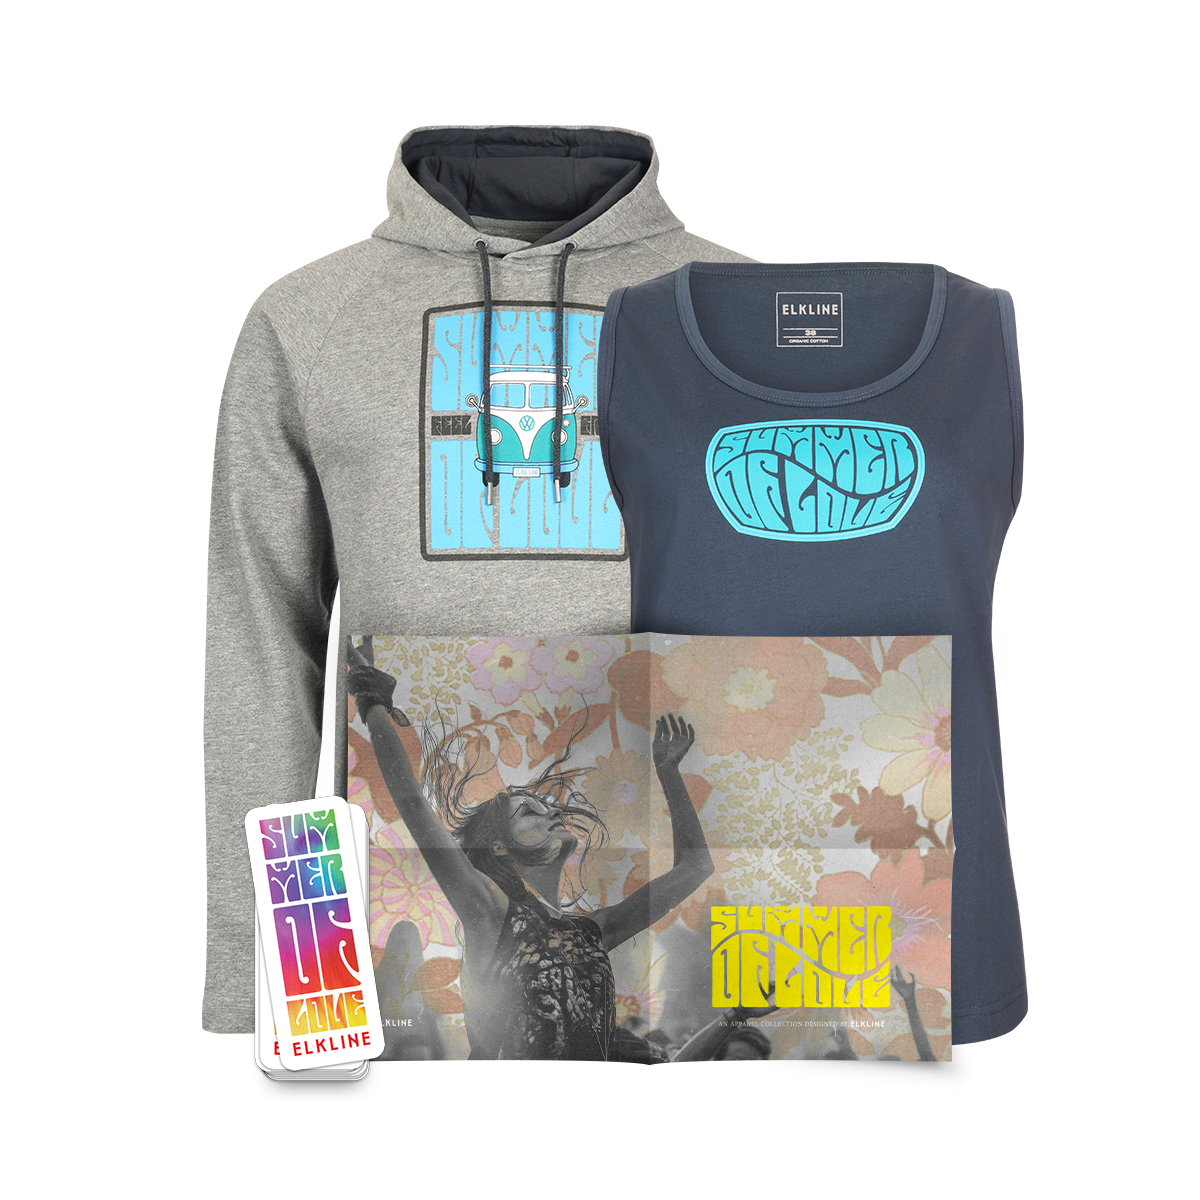 Sign up for the newsletter and be entered into the Summer of Love Raffle!  You can win the ultimate Summer of Love Set including a sweater, T-shirt, poster and sticker!